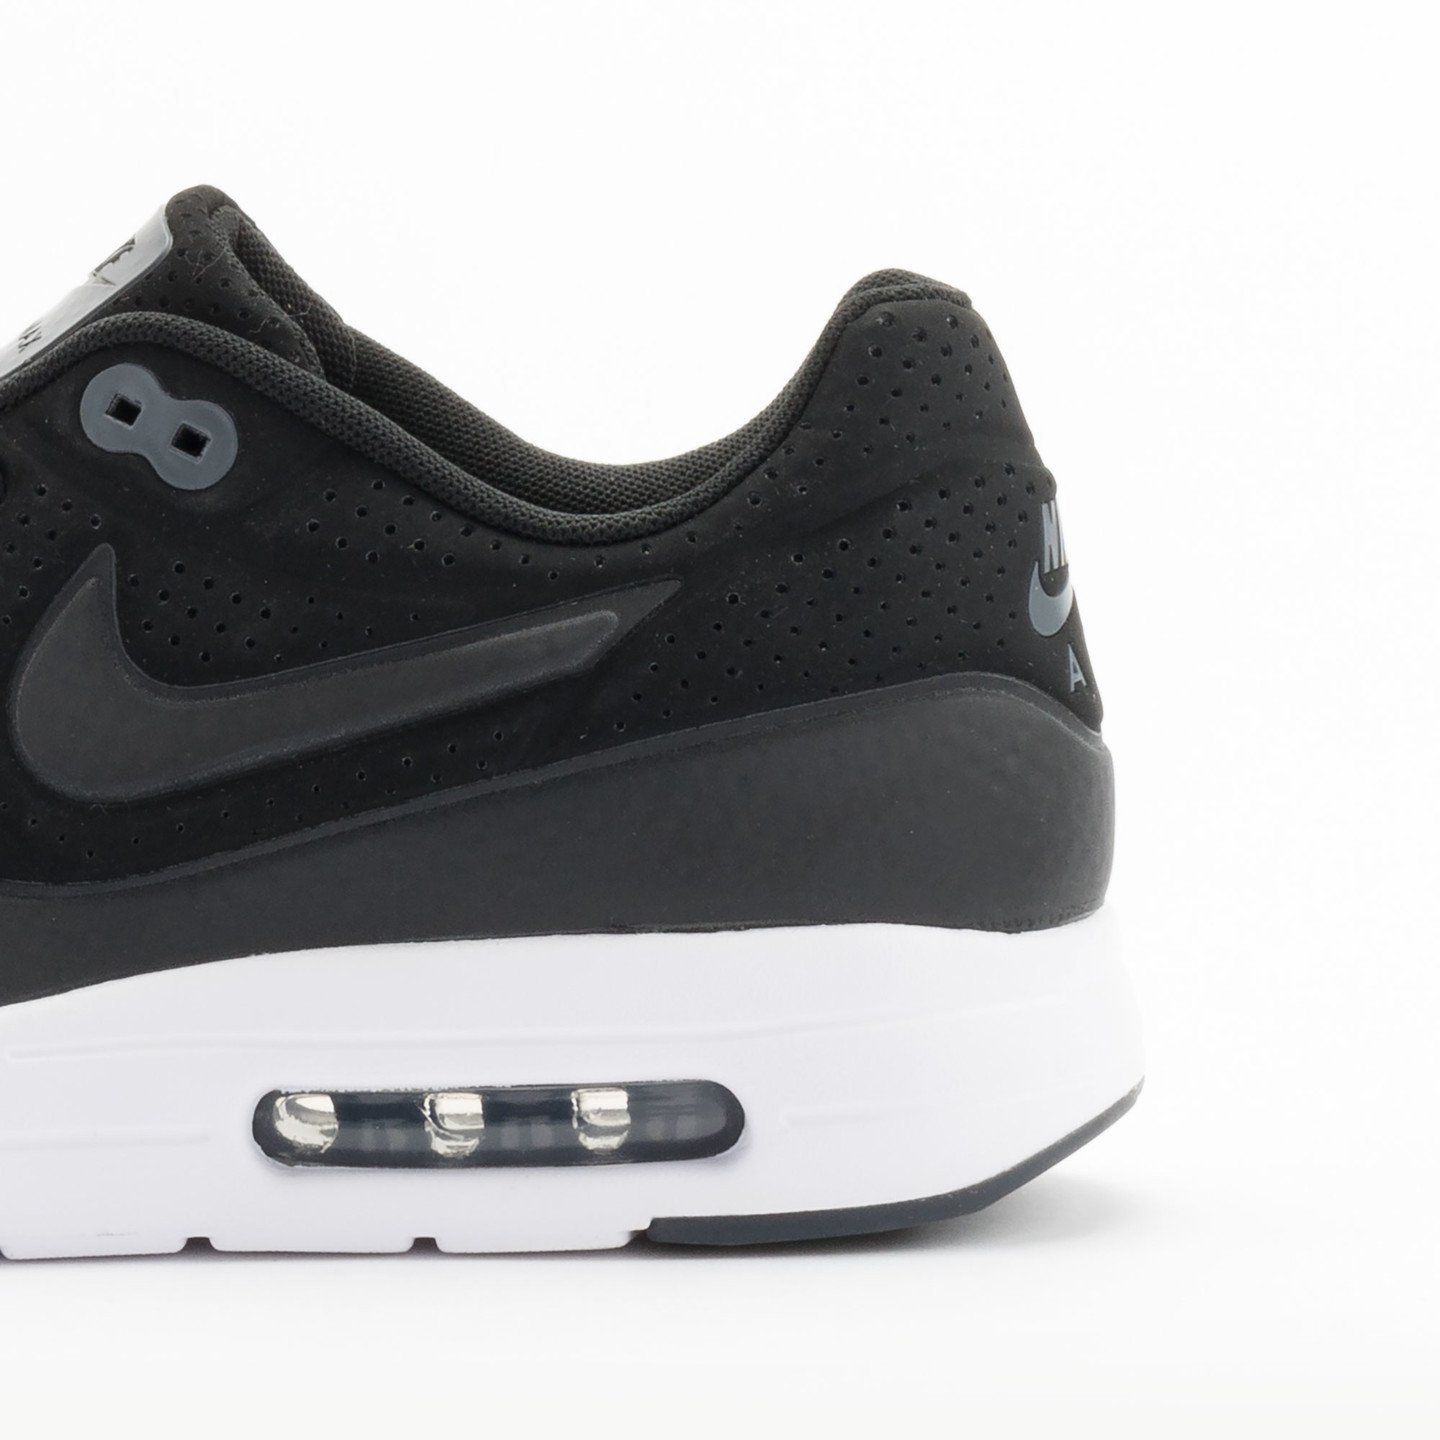 Nike Air Max 1 Ultra Moire Black Reflective / White 705297-010-44.5